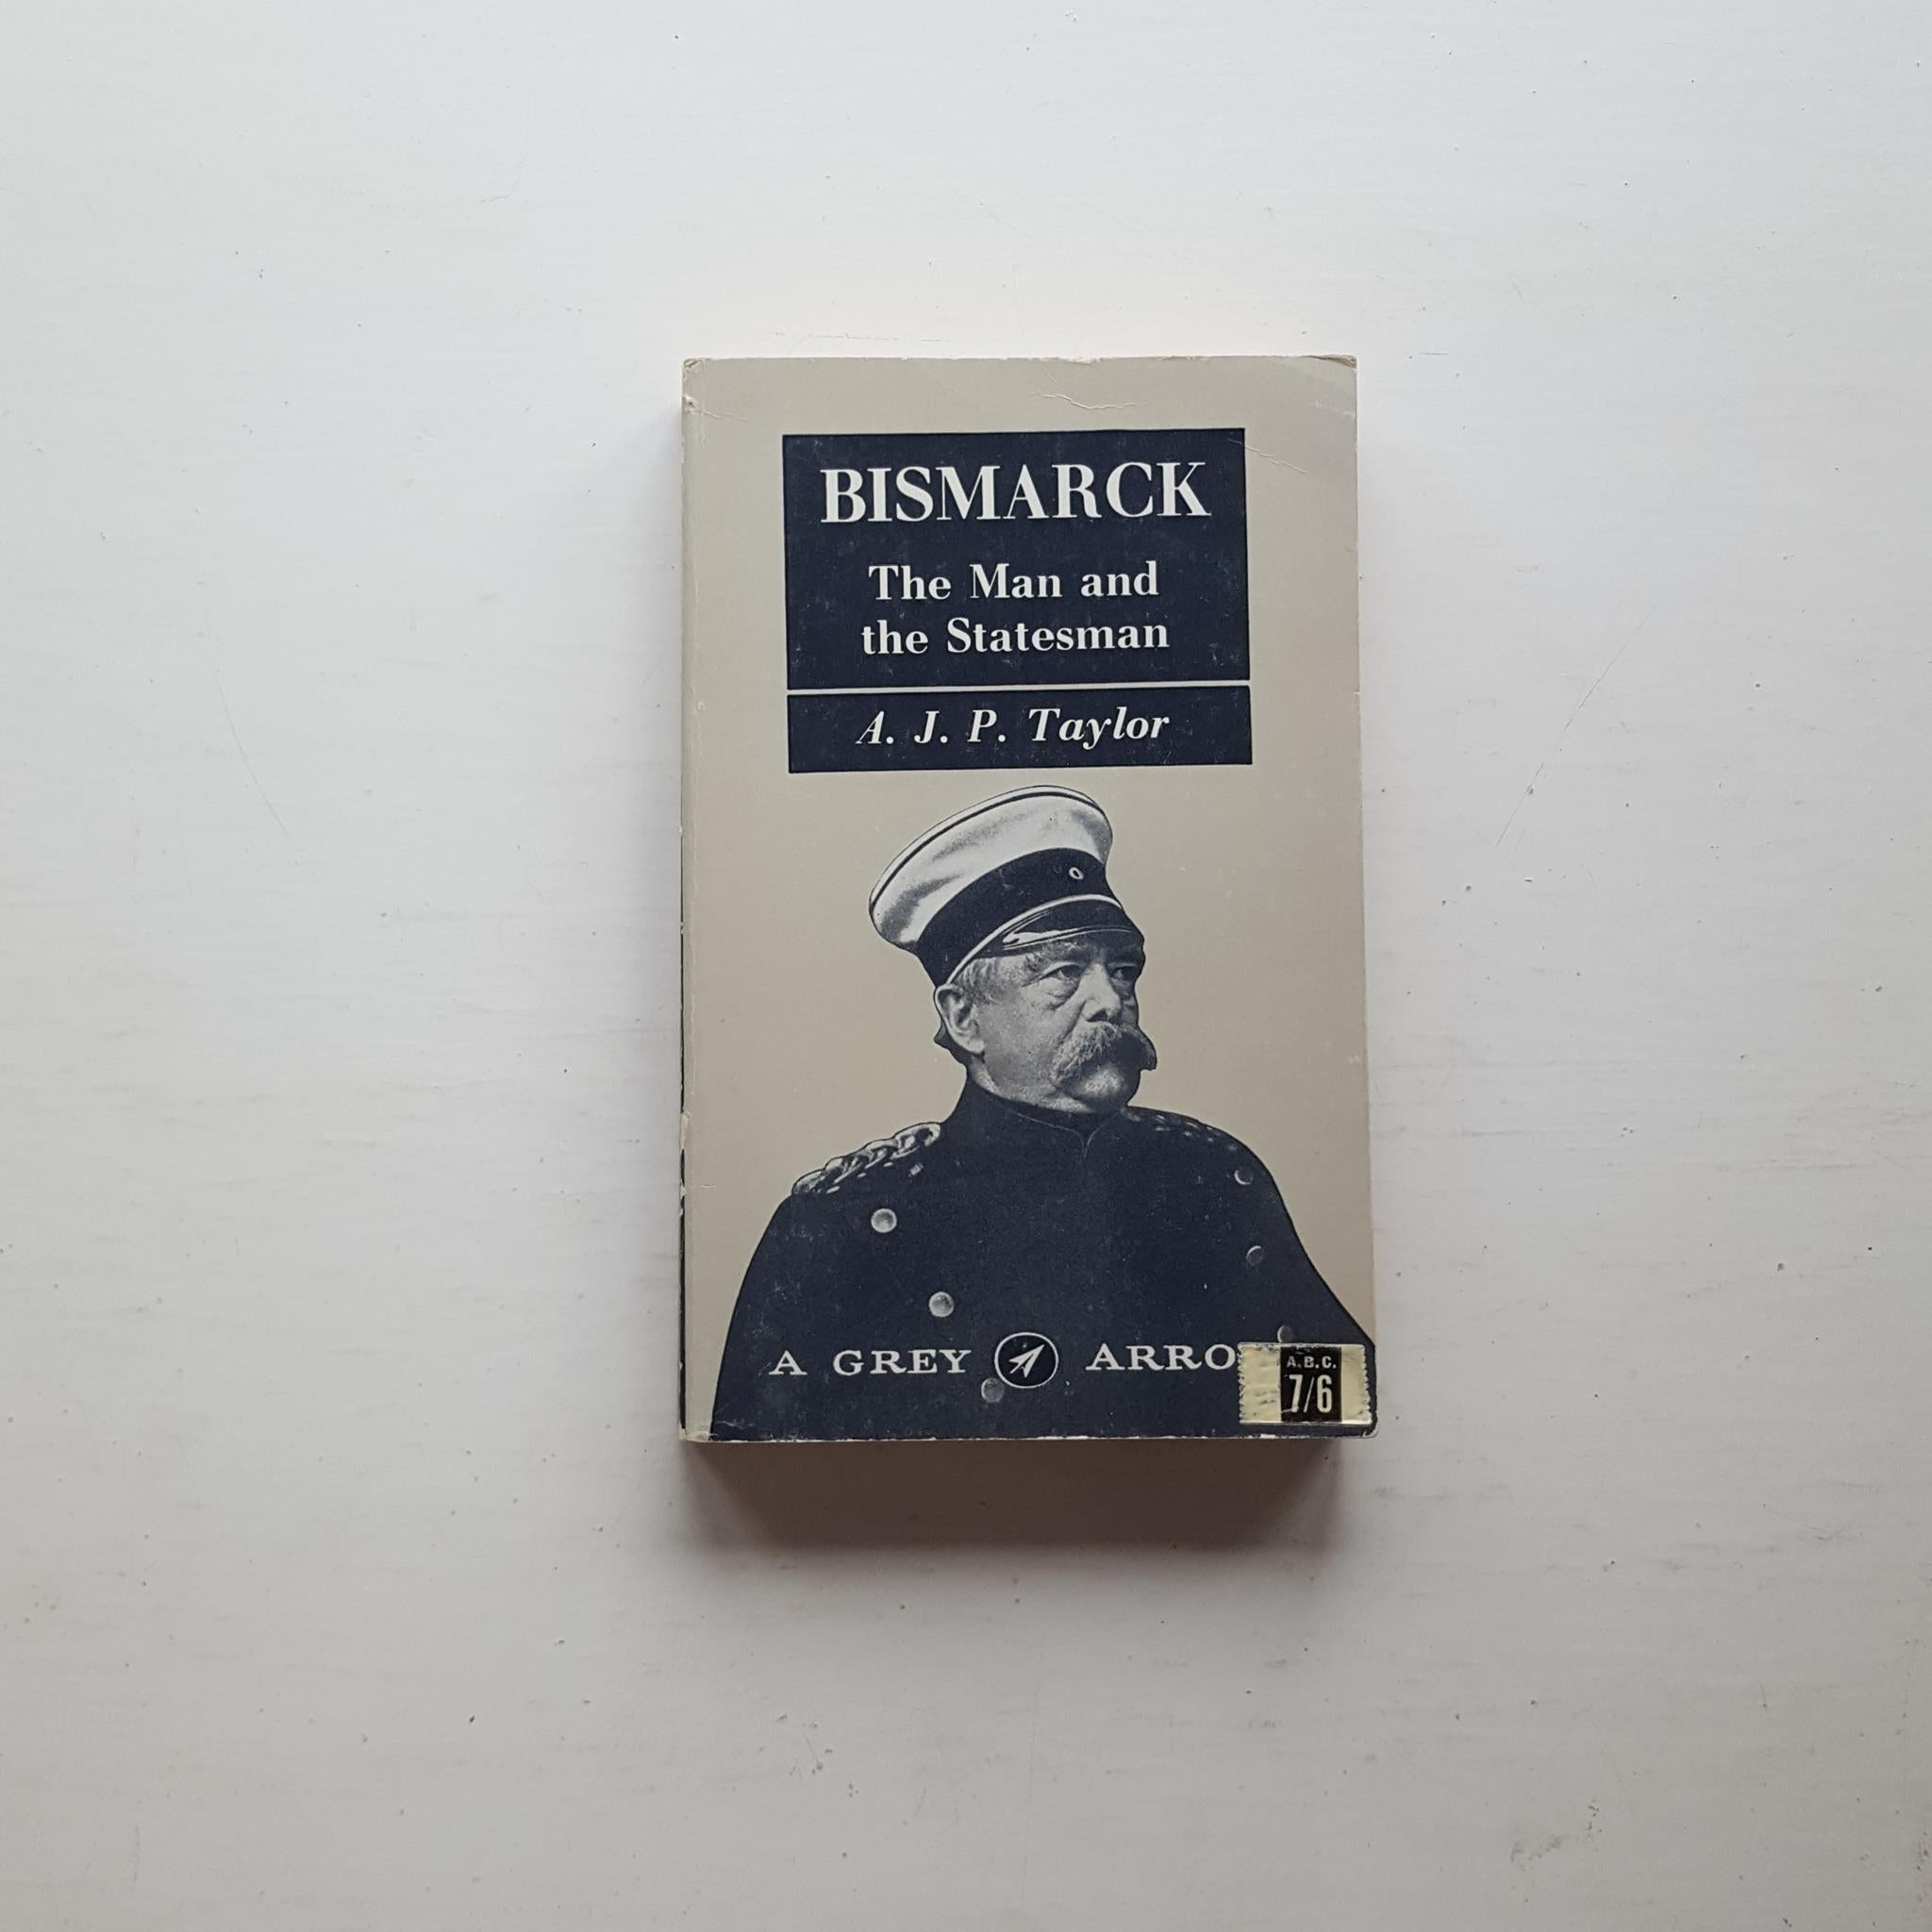 Bismark: The Man and the Statesman by A.J.P. Taylor